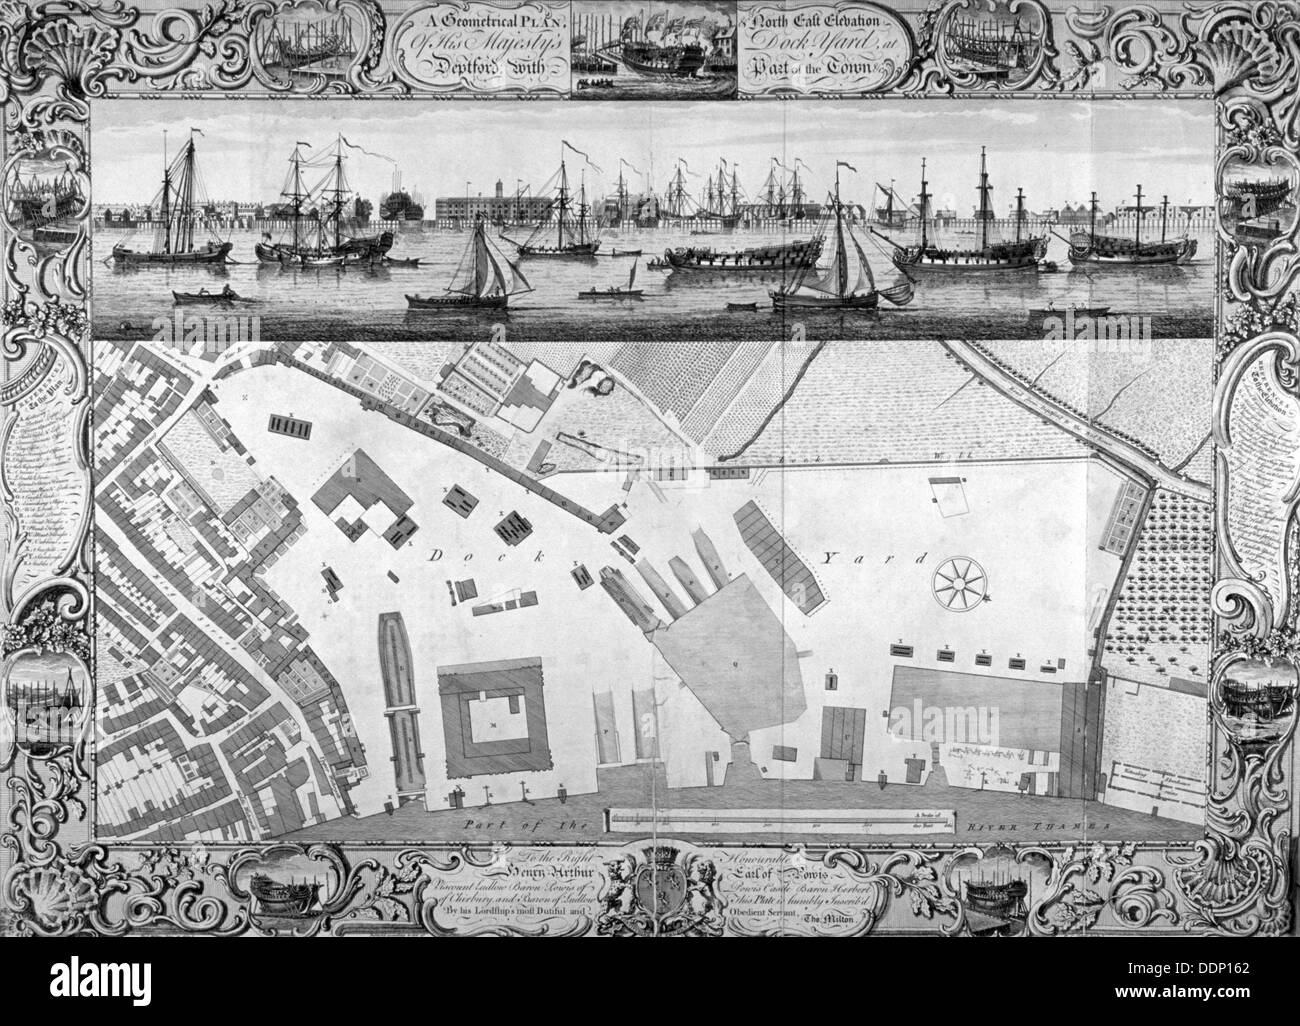 Deptford Docks, London, 1753.                                                   Artist: Pierre-Charles Canot - Stock Image